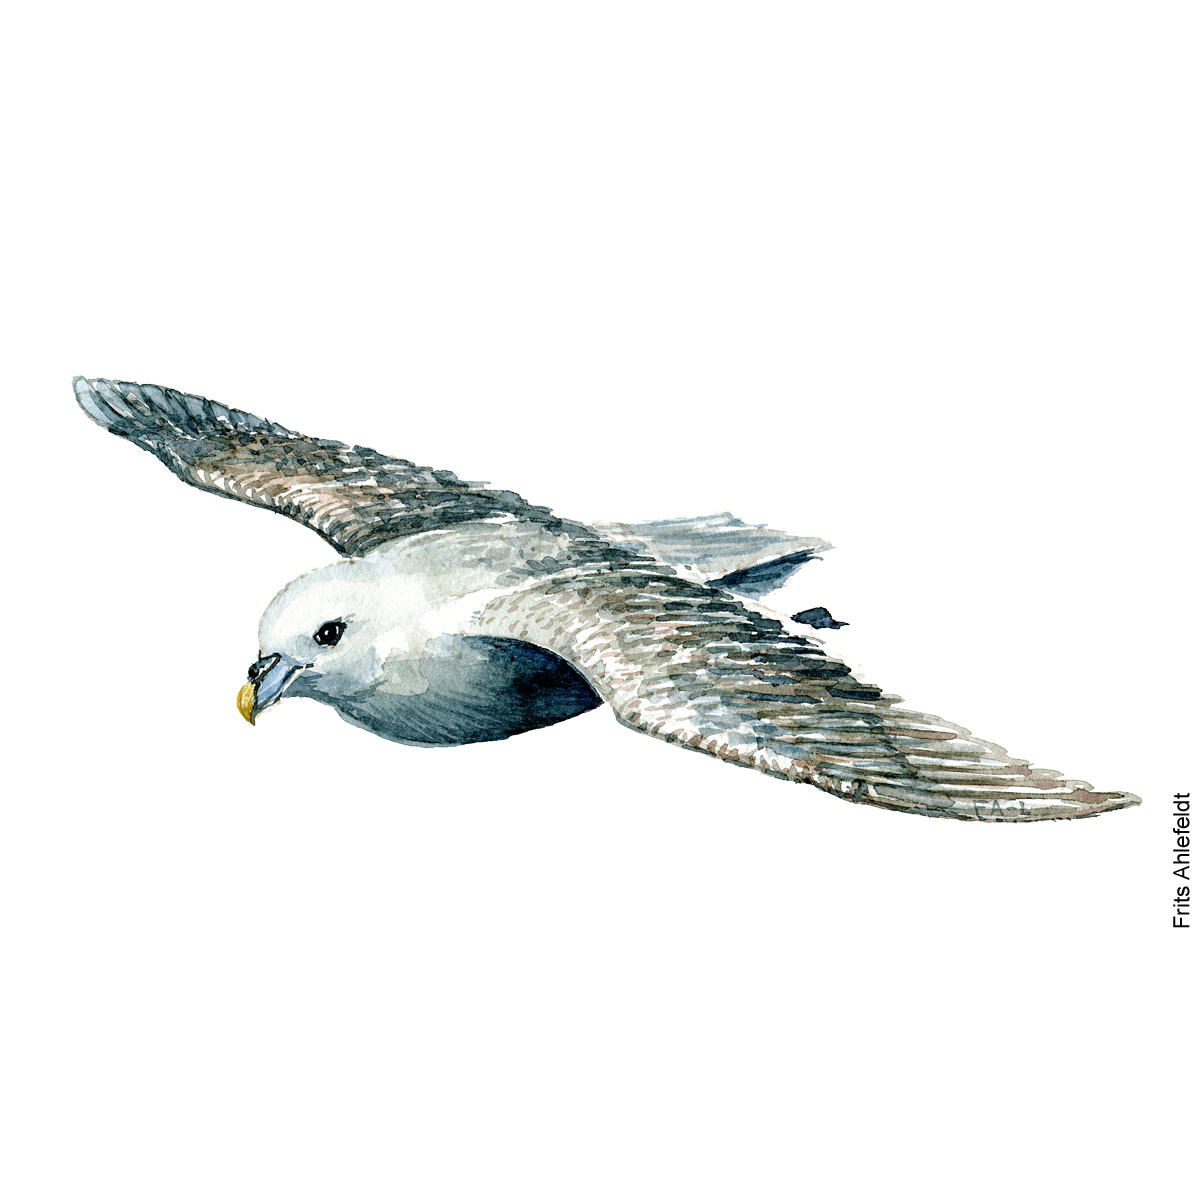 Northern fulmar Bird watercolor illustration handmade by Frits Ahlefeldt